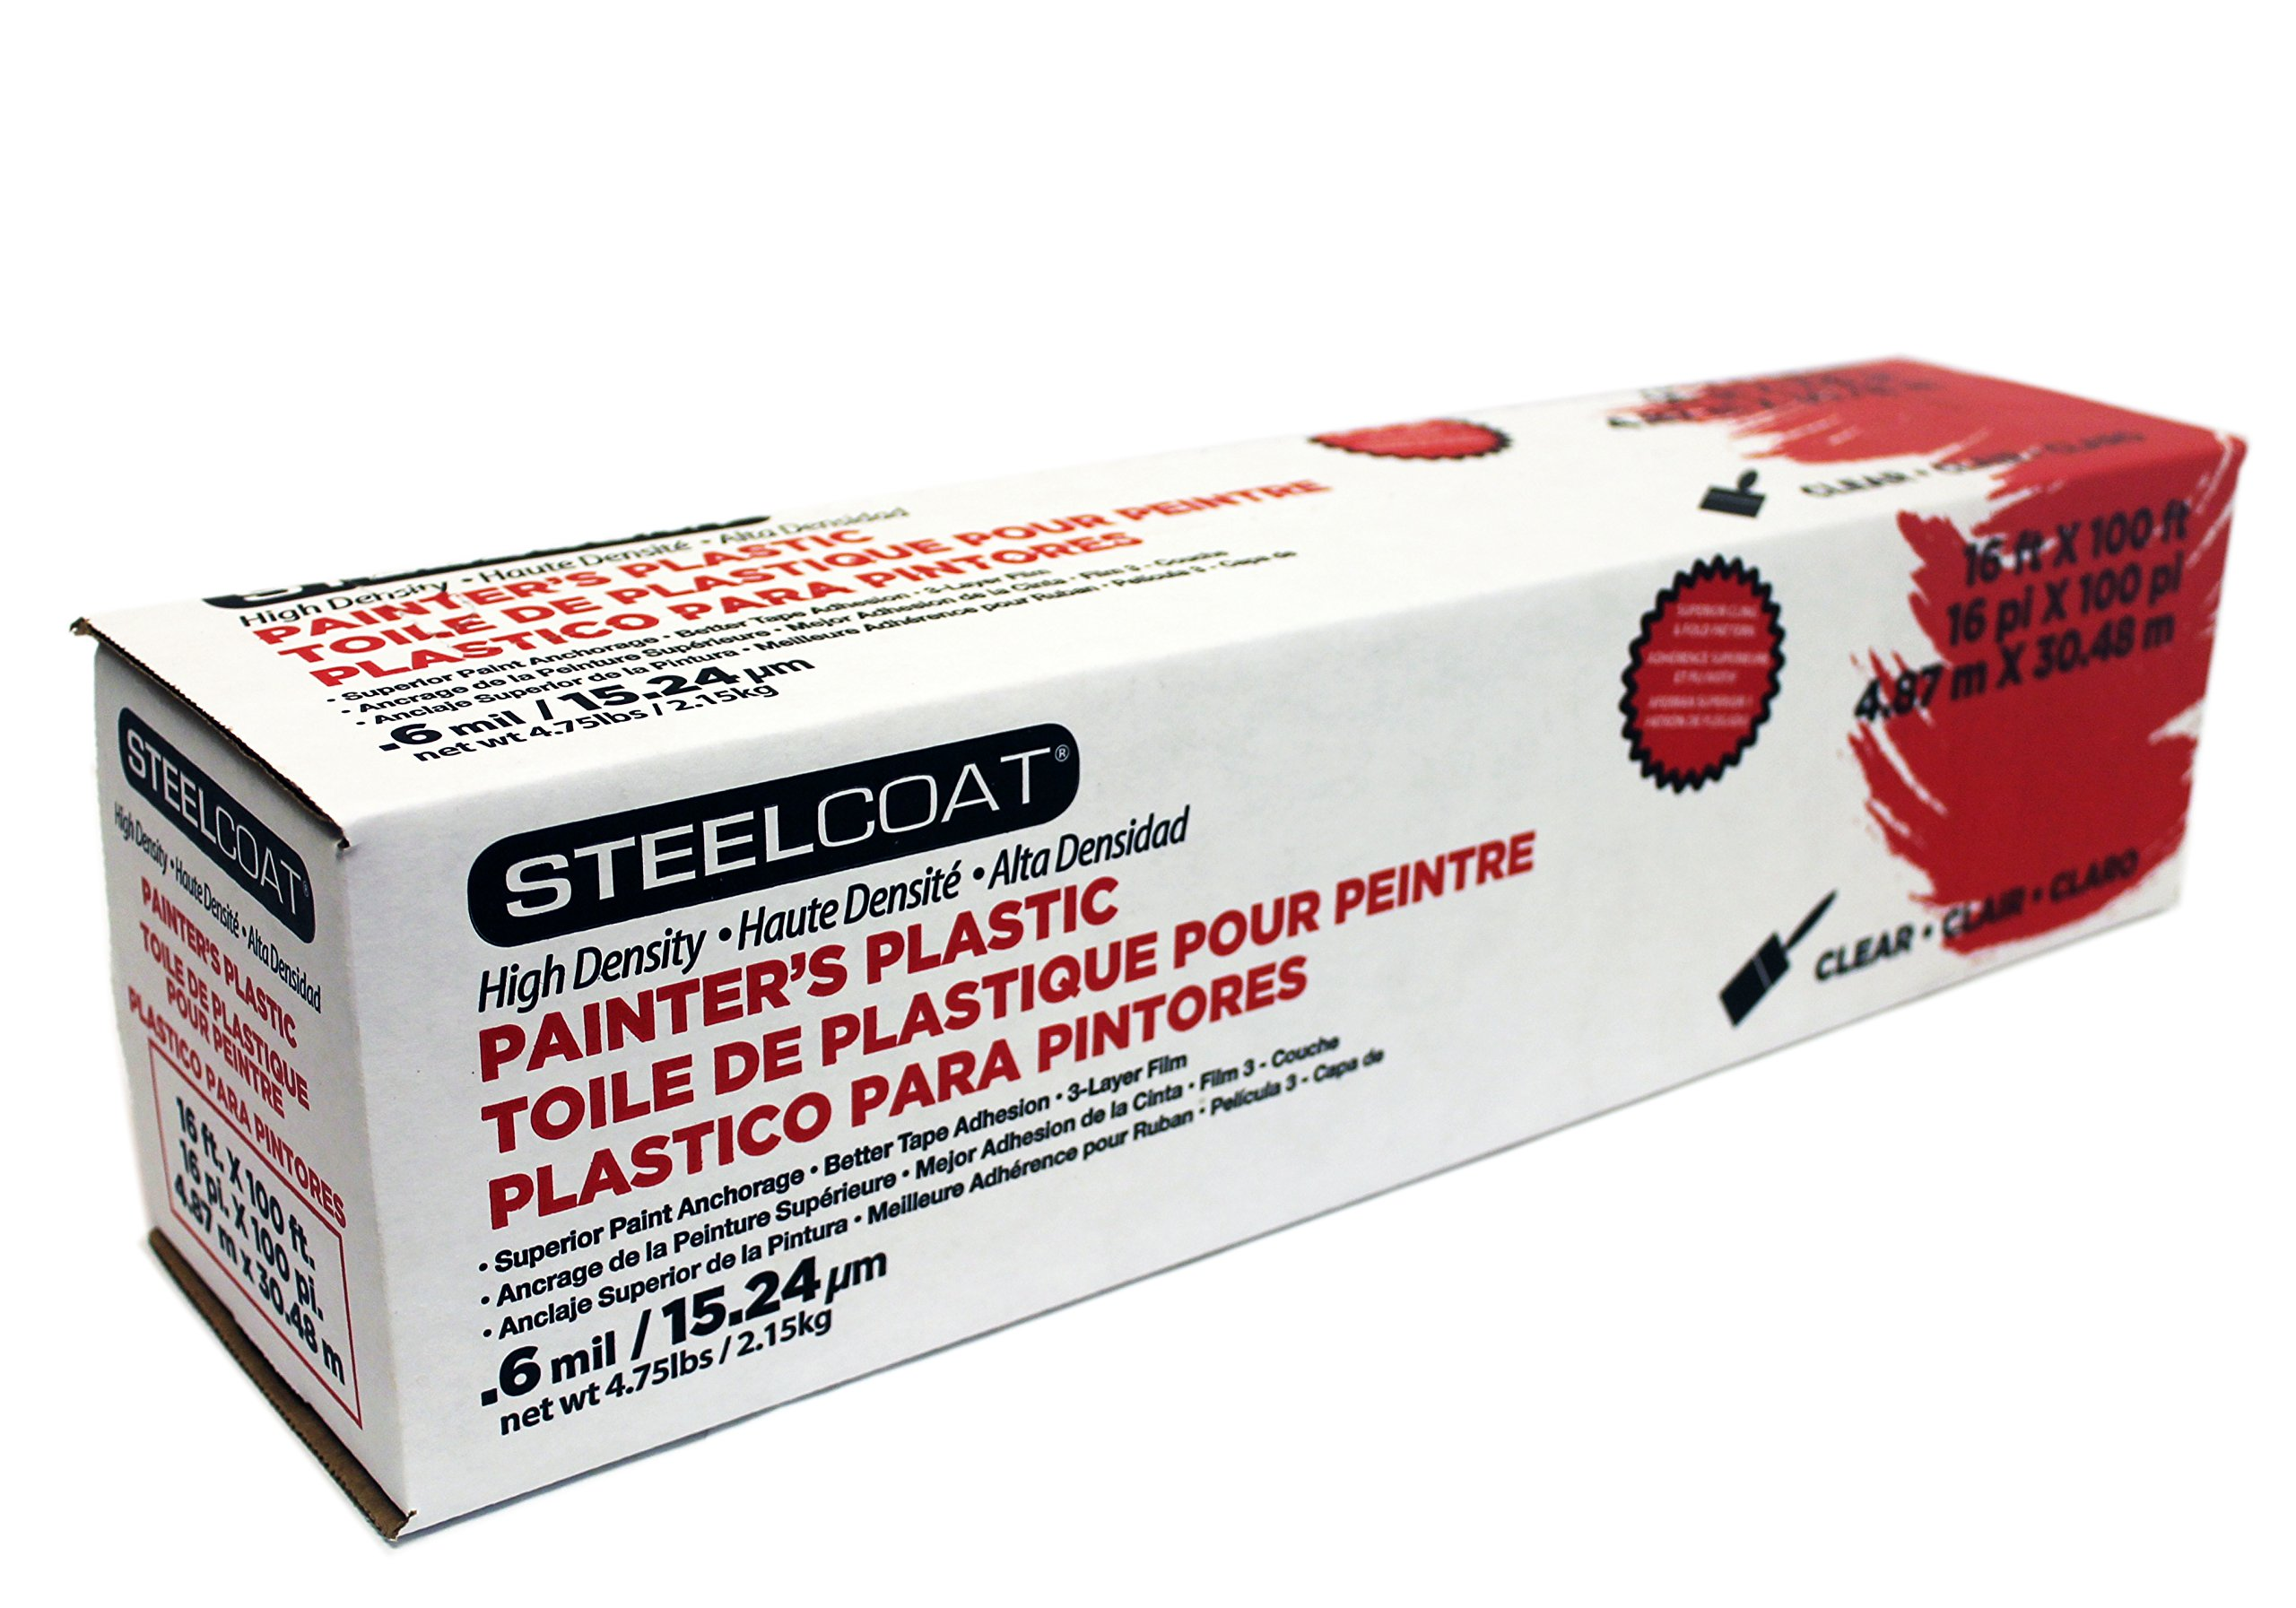 STEELCOAT FG-P9934-68A High Density Painter's Plastic, 16' x 100'